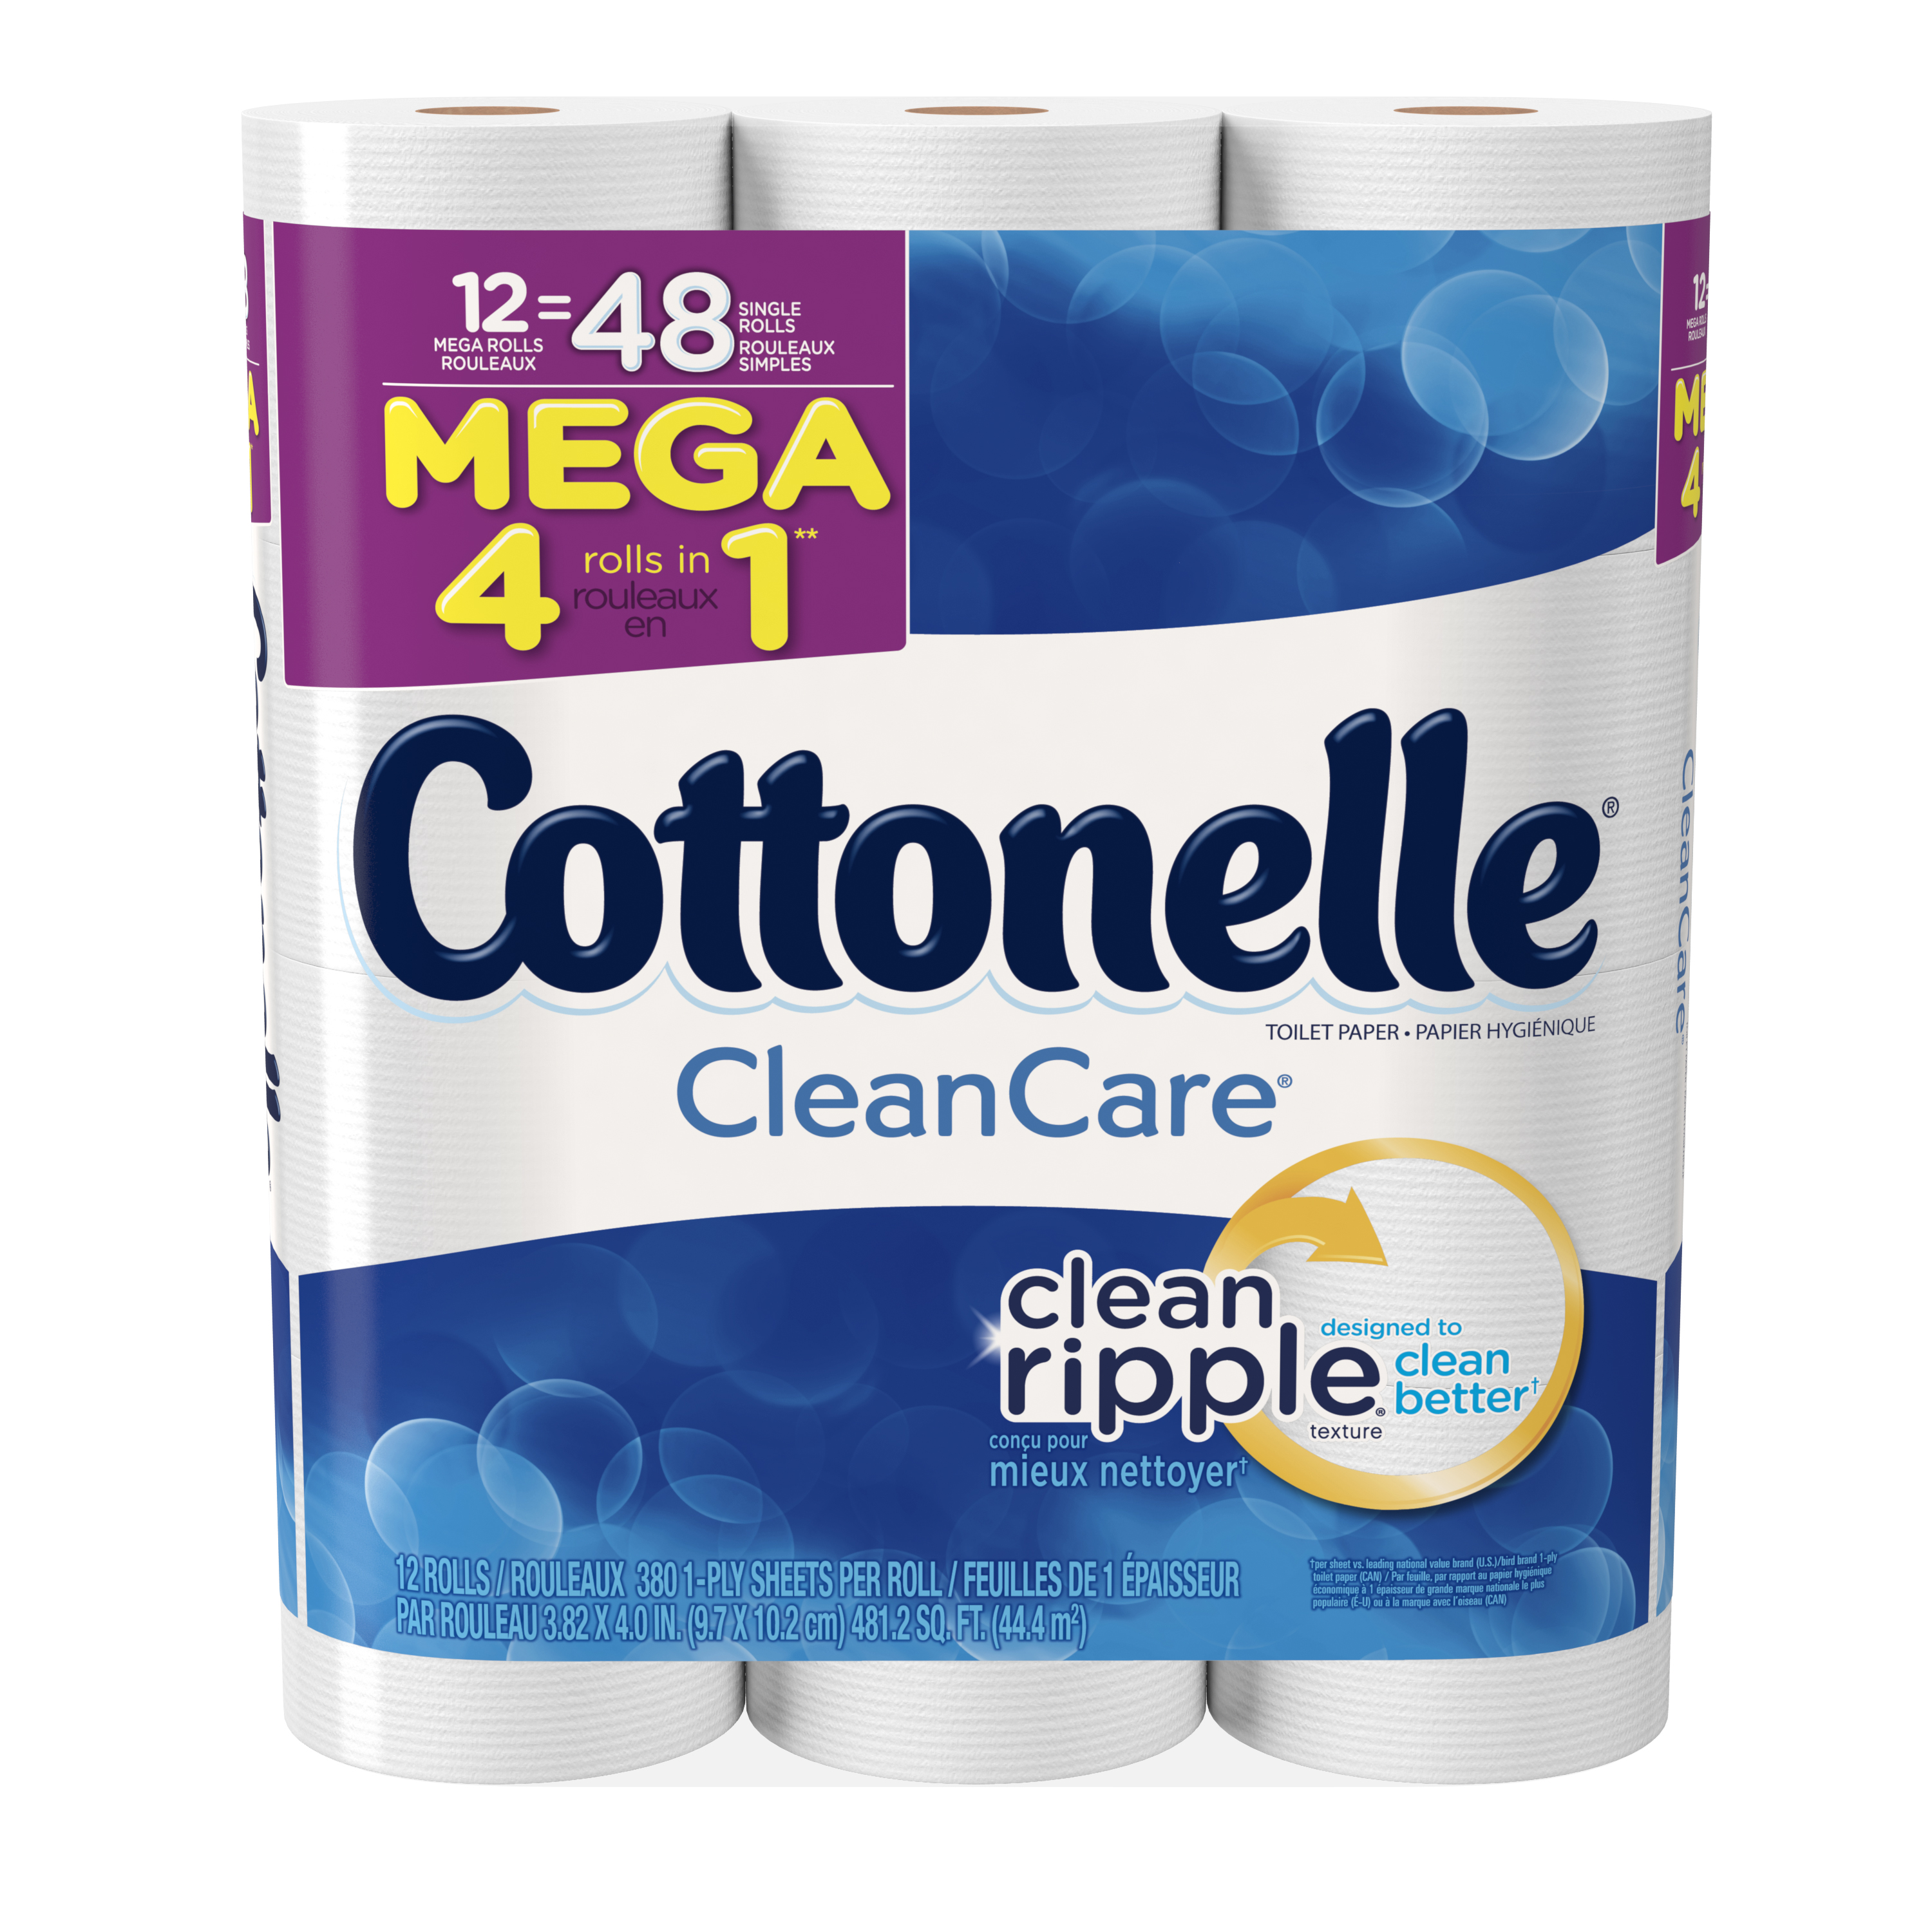 Cottonelle Clean Care Mega Roll Toilet Paper, 380 sheets, 12 rolls